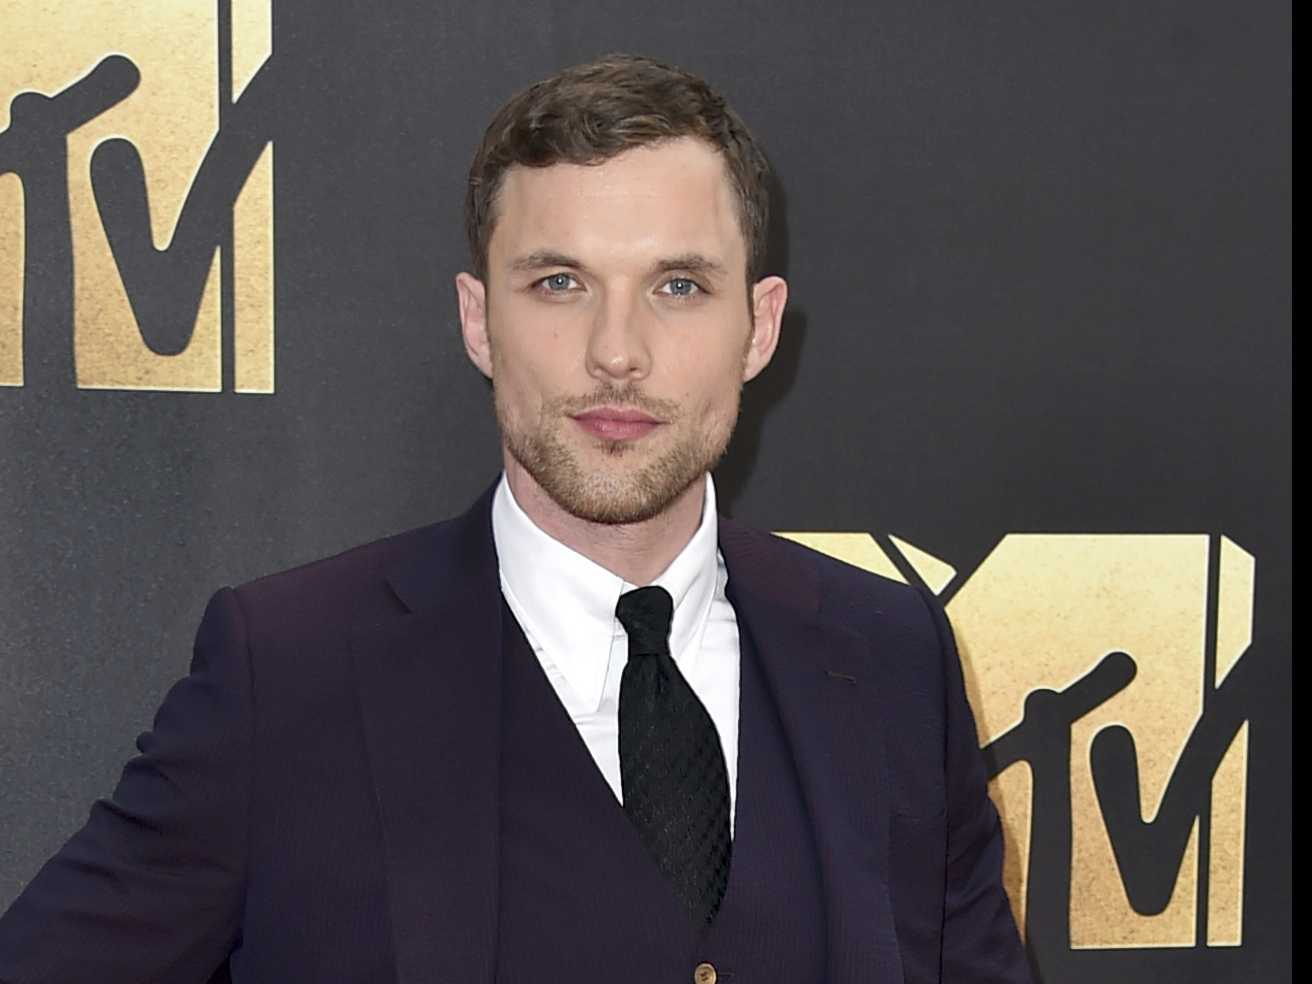 'Hellboy' Casting Prompts Backlash Over 'Whitewashing'